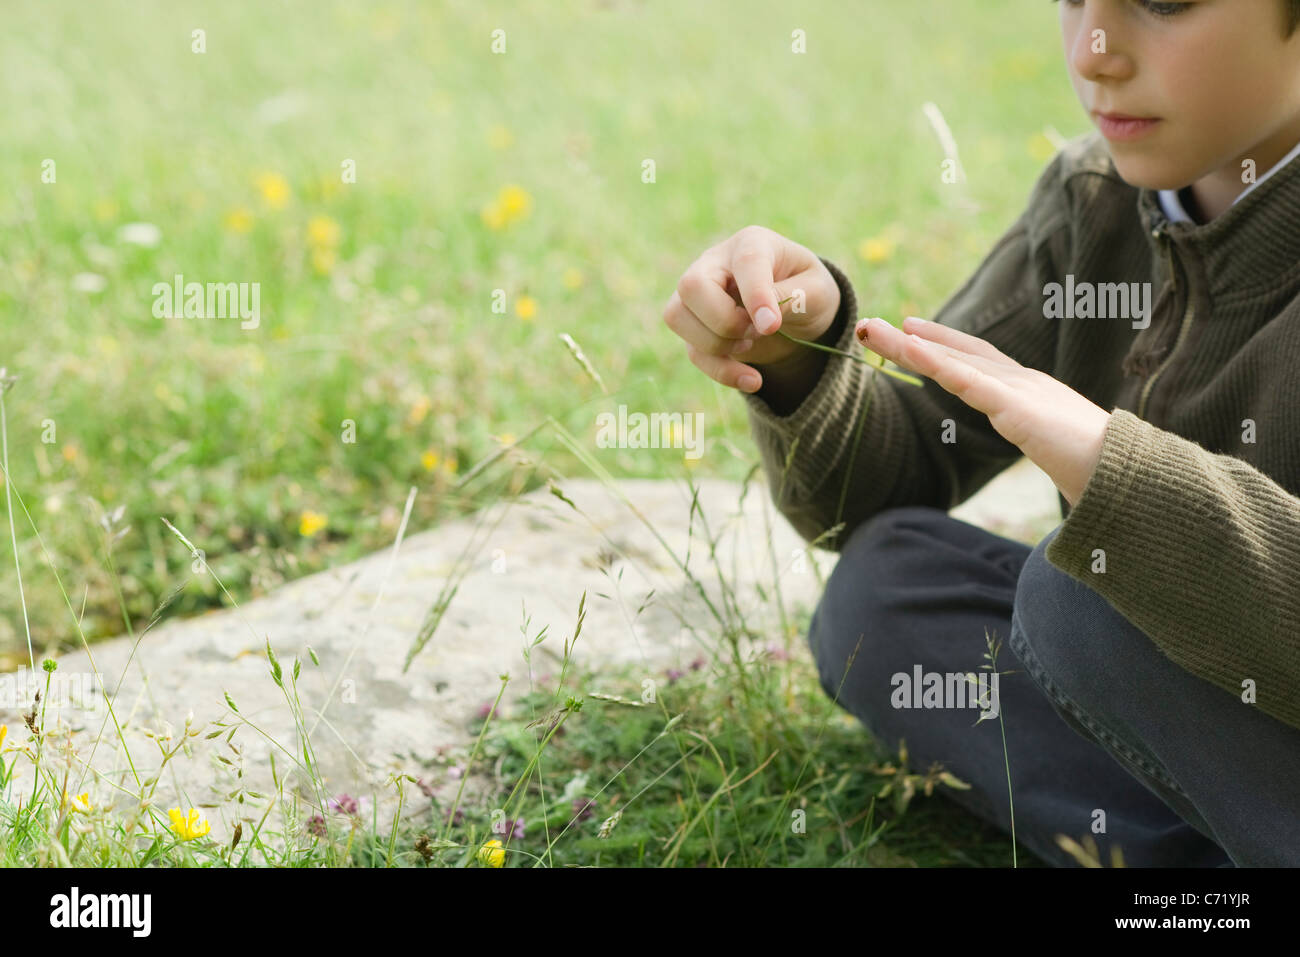 Boy sitting on grass, playing with ladybug - Stock Image